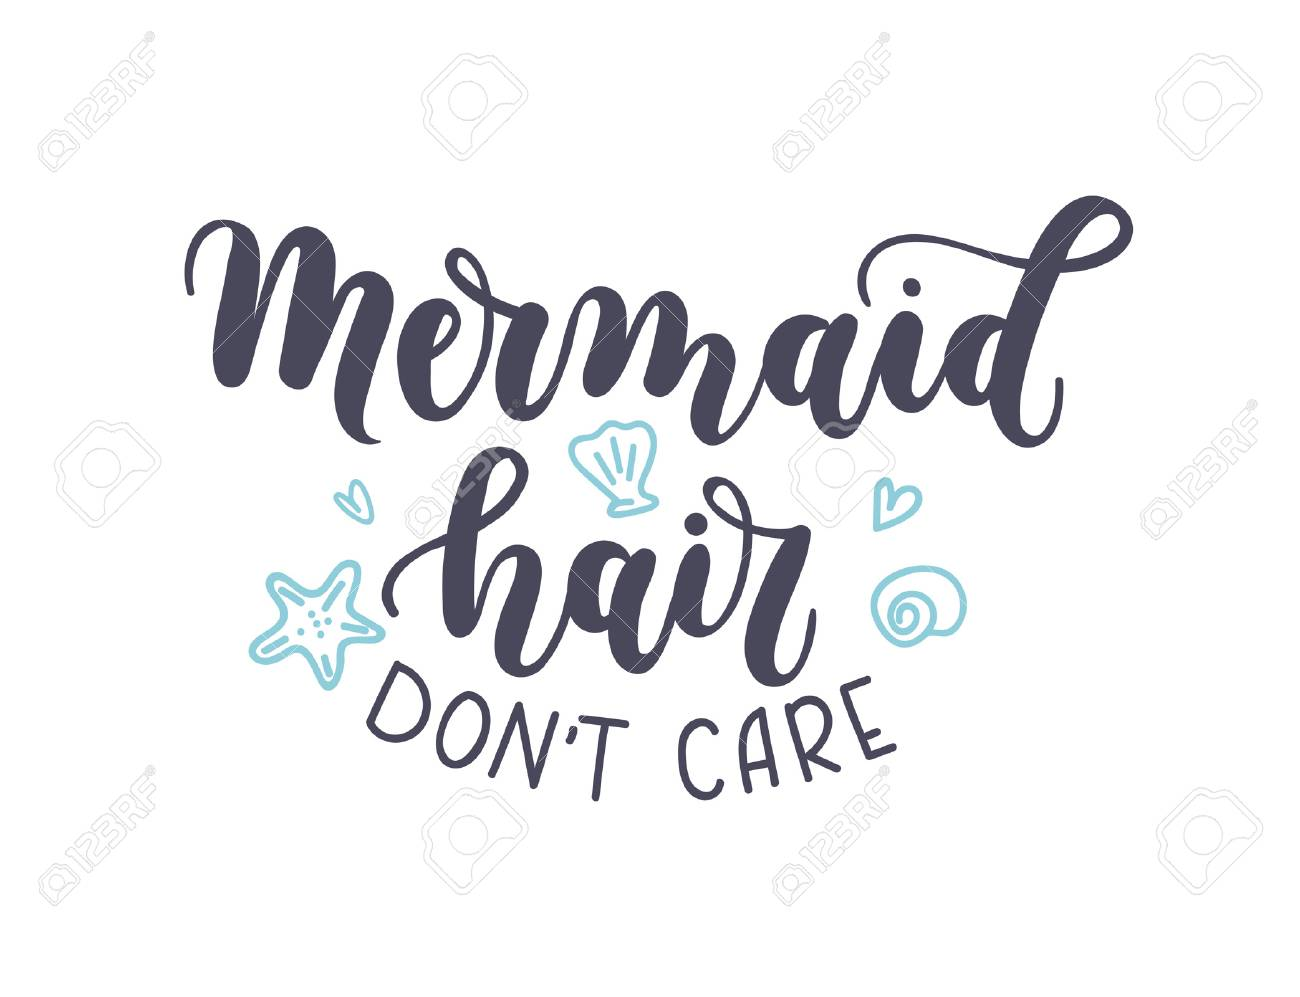 d6c099aa2 Mermaid hair don't care lettering inscription with seashells isolated on  white background. Hand